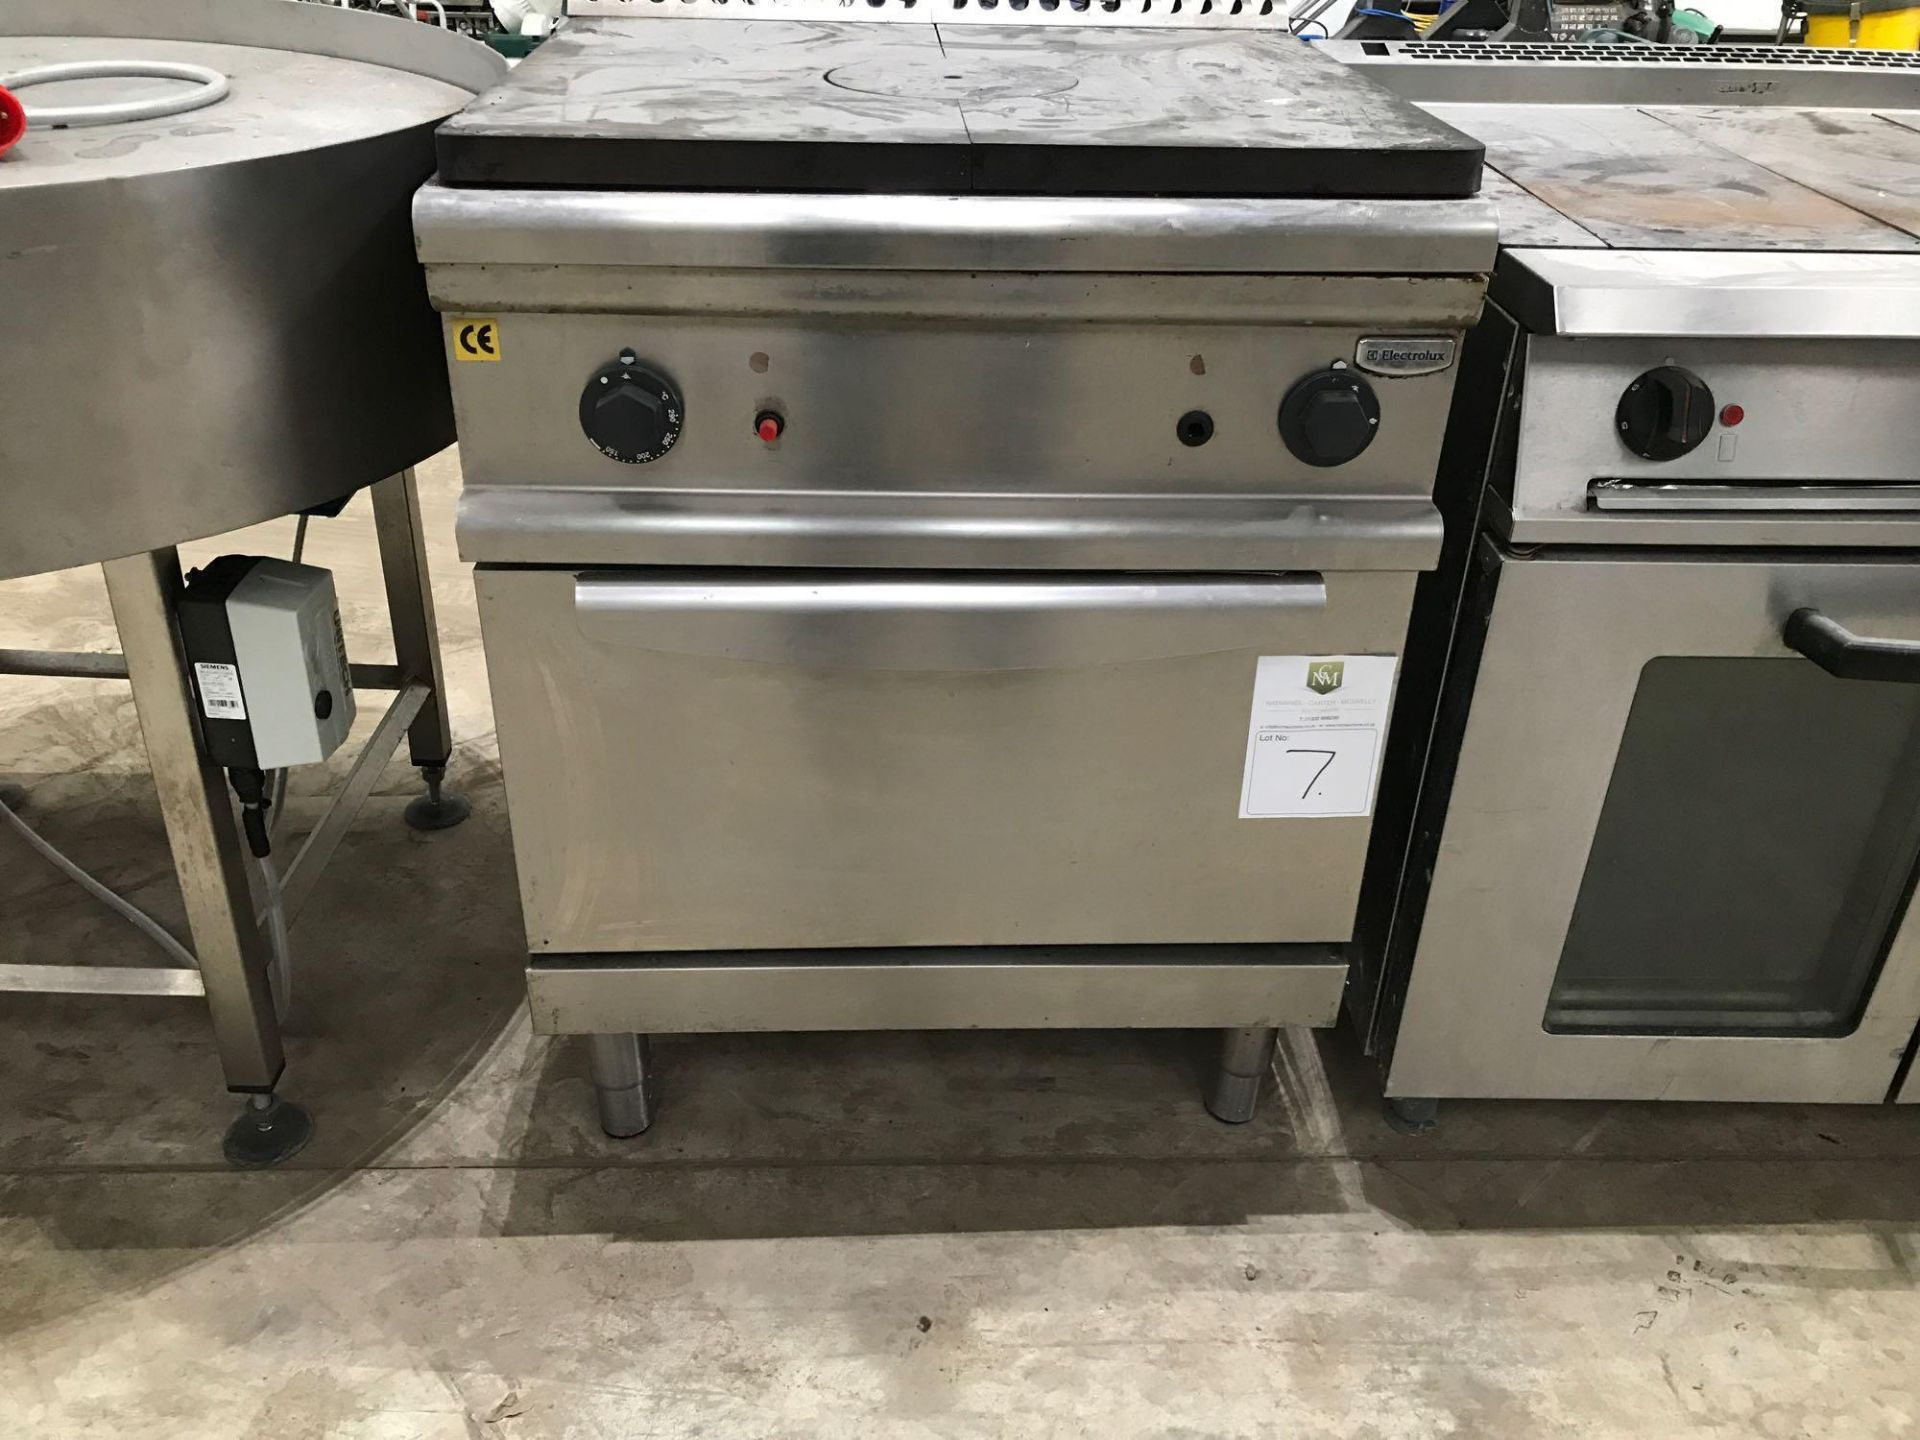 Lot 177 - Electrolux oven and hot plate